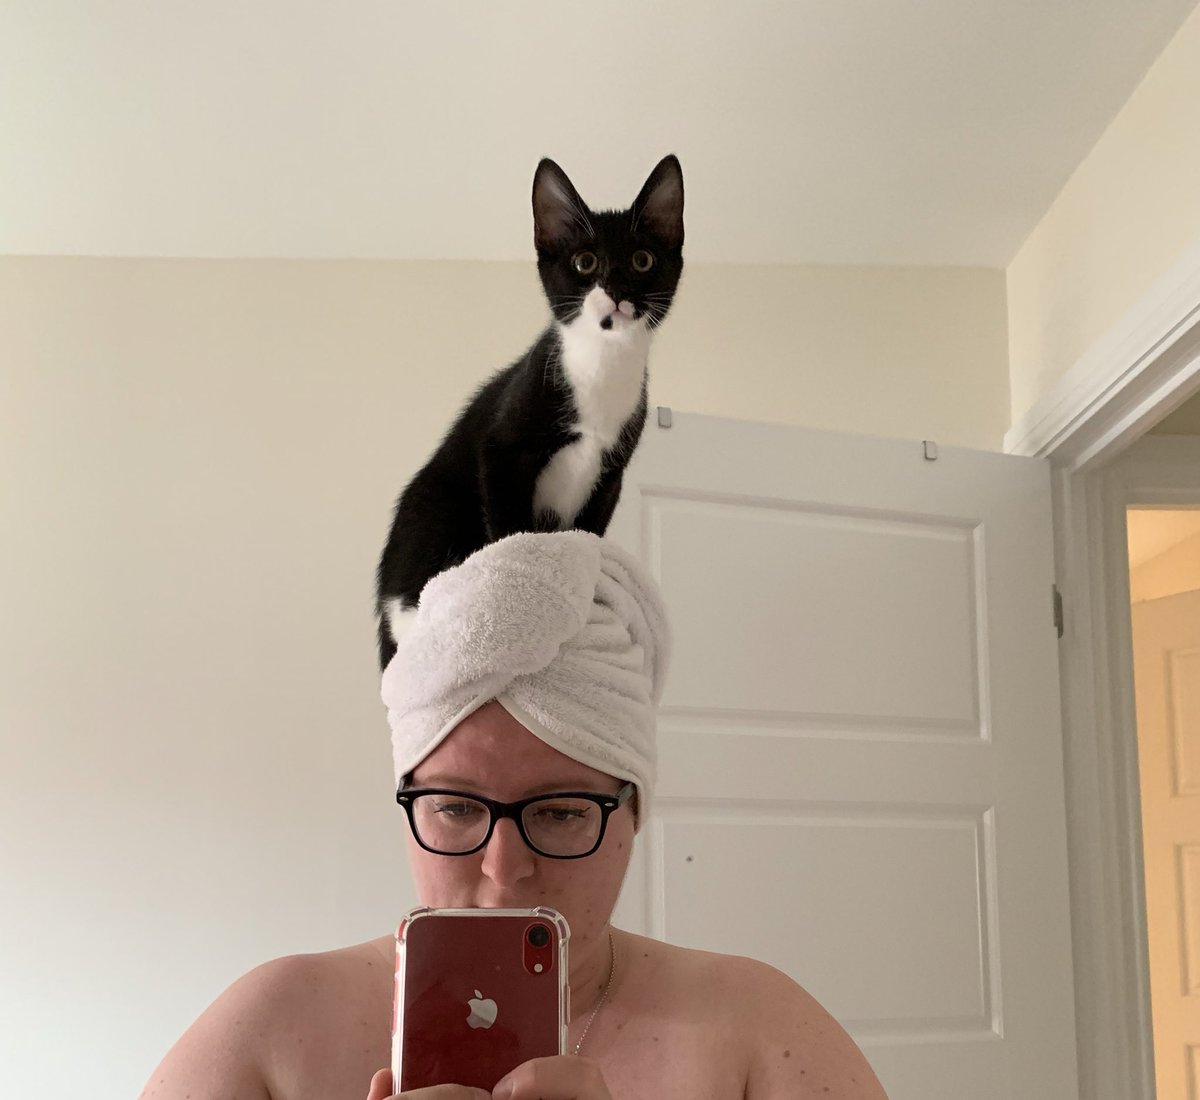 My morning routine isn't the same anymore now that a #tuxedocat #kitten decided to sit on my head. #newkitten #catsoftwitter thank goodness Mabel doesn't try this. Her fat backside would cause my skull to cave.<br>http://pic.twitter.com/t14b3nznvD